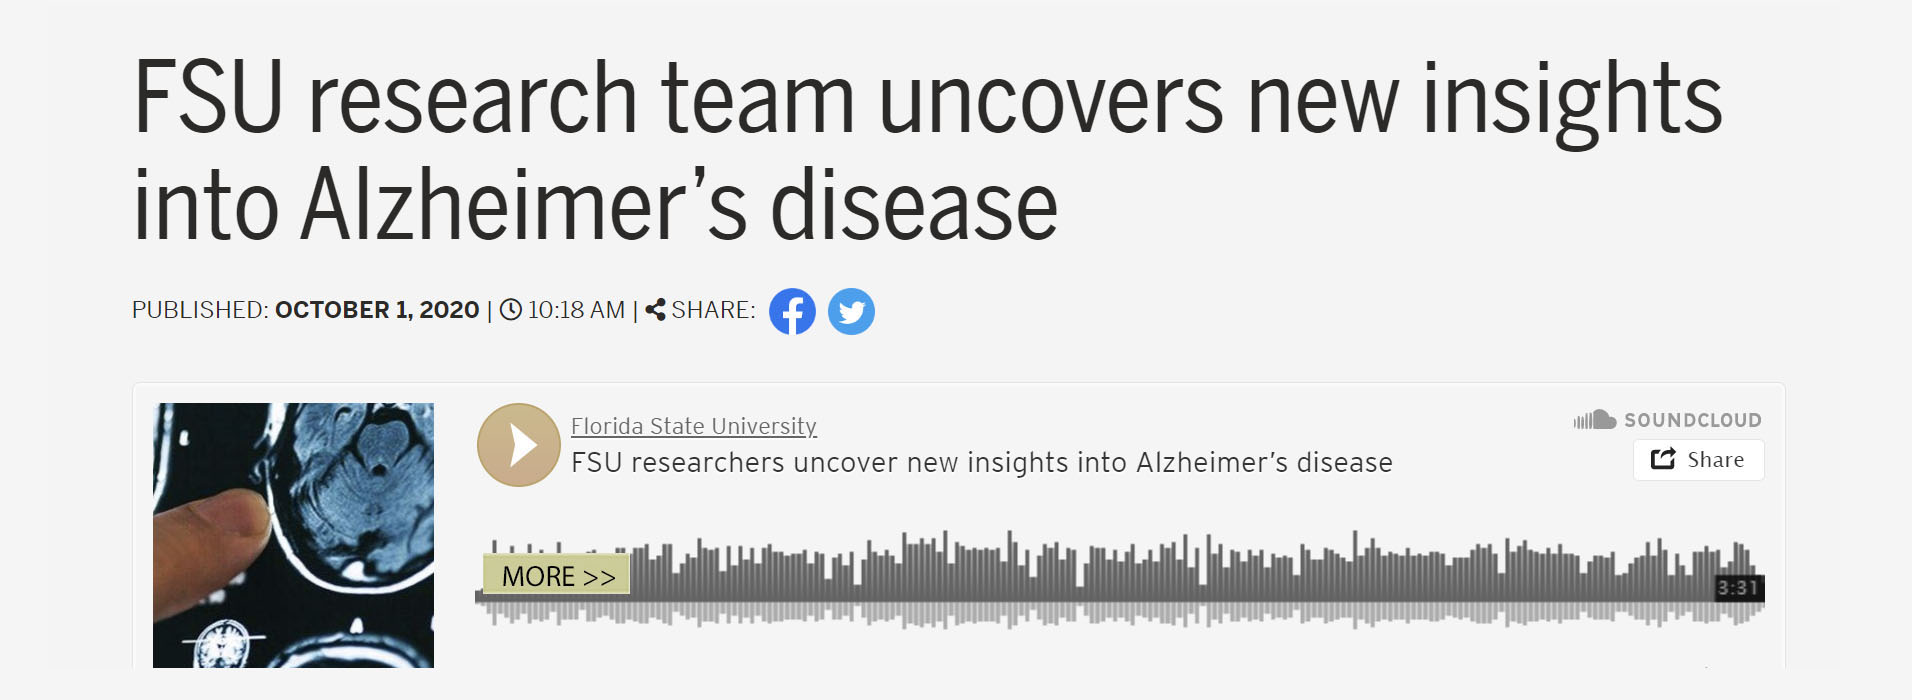 FSU research team uncovers new insights into Alzheimer's disease